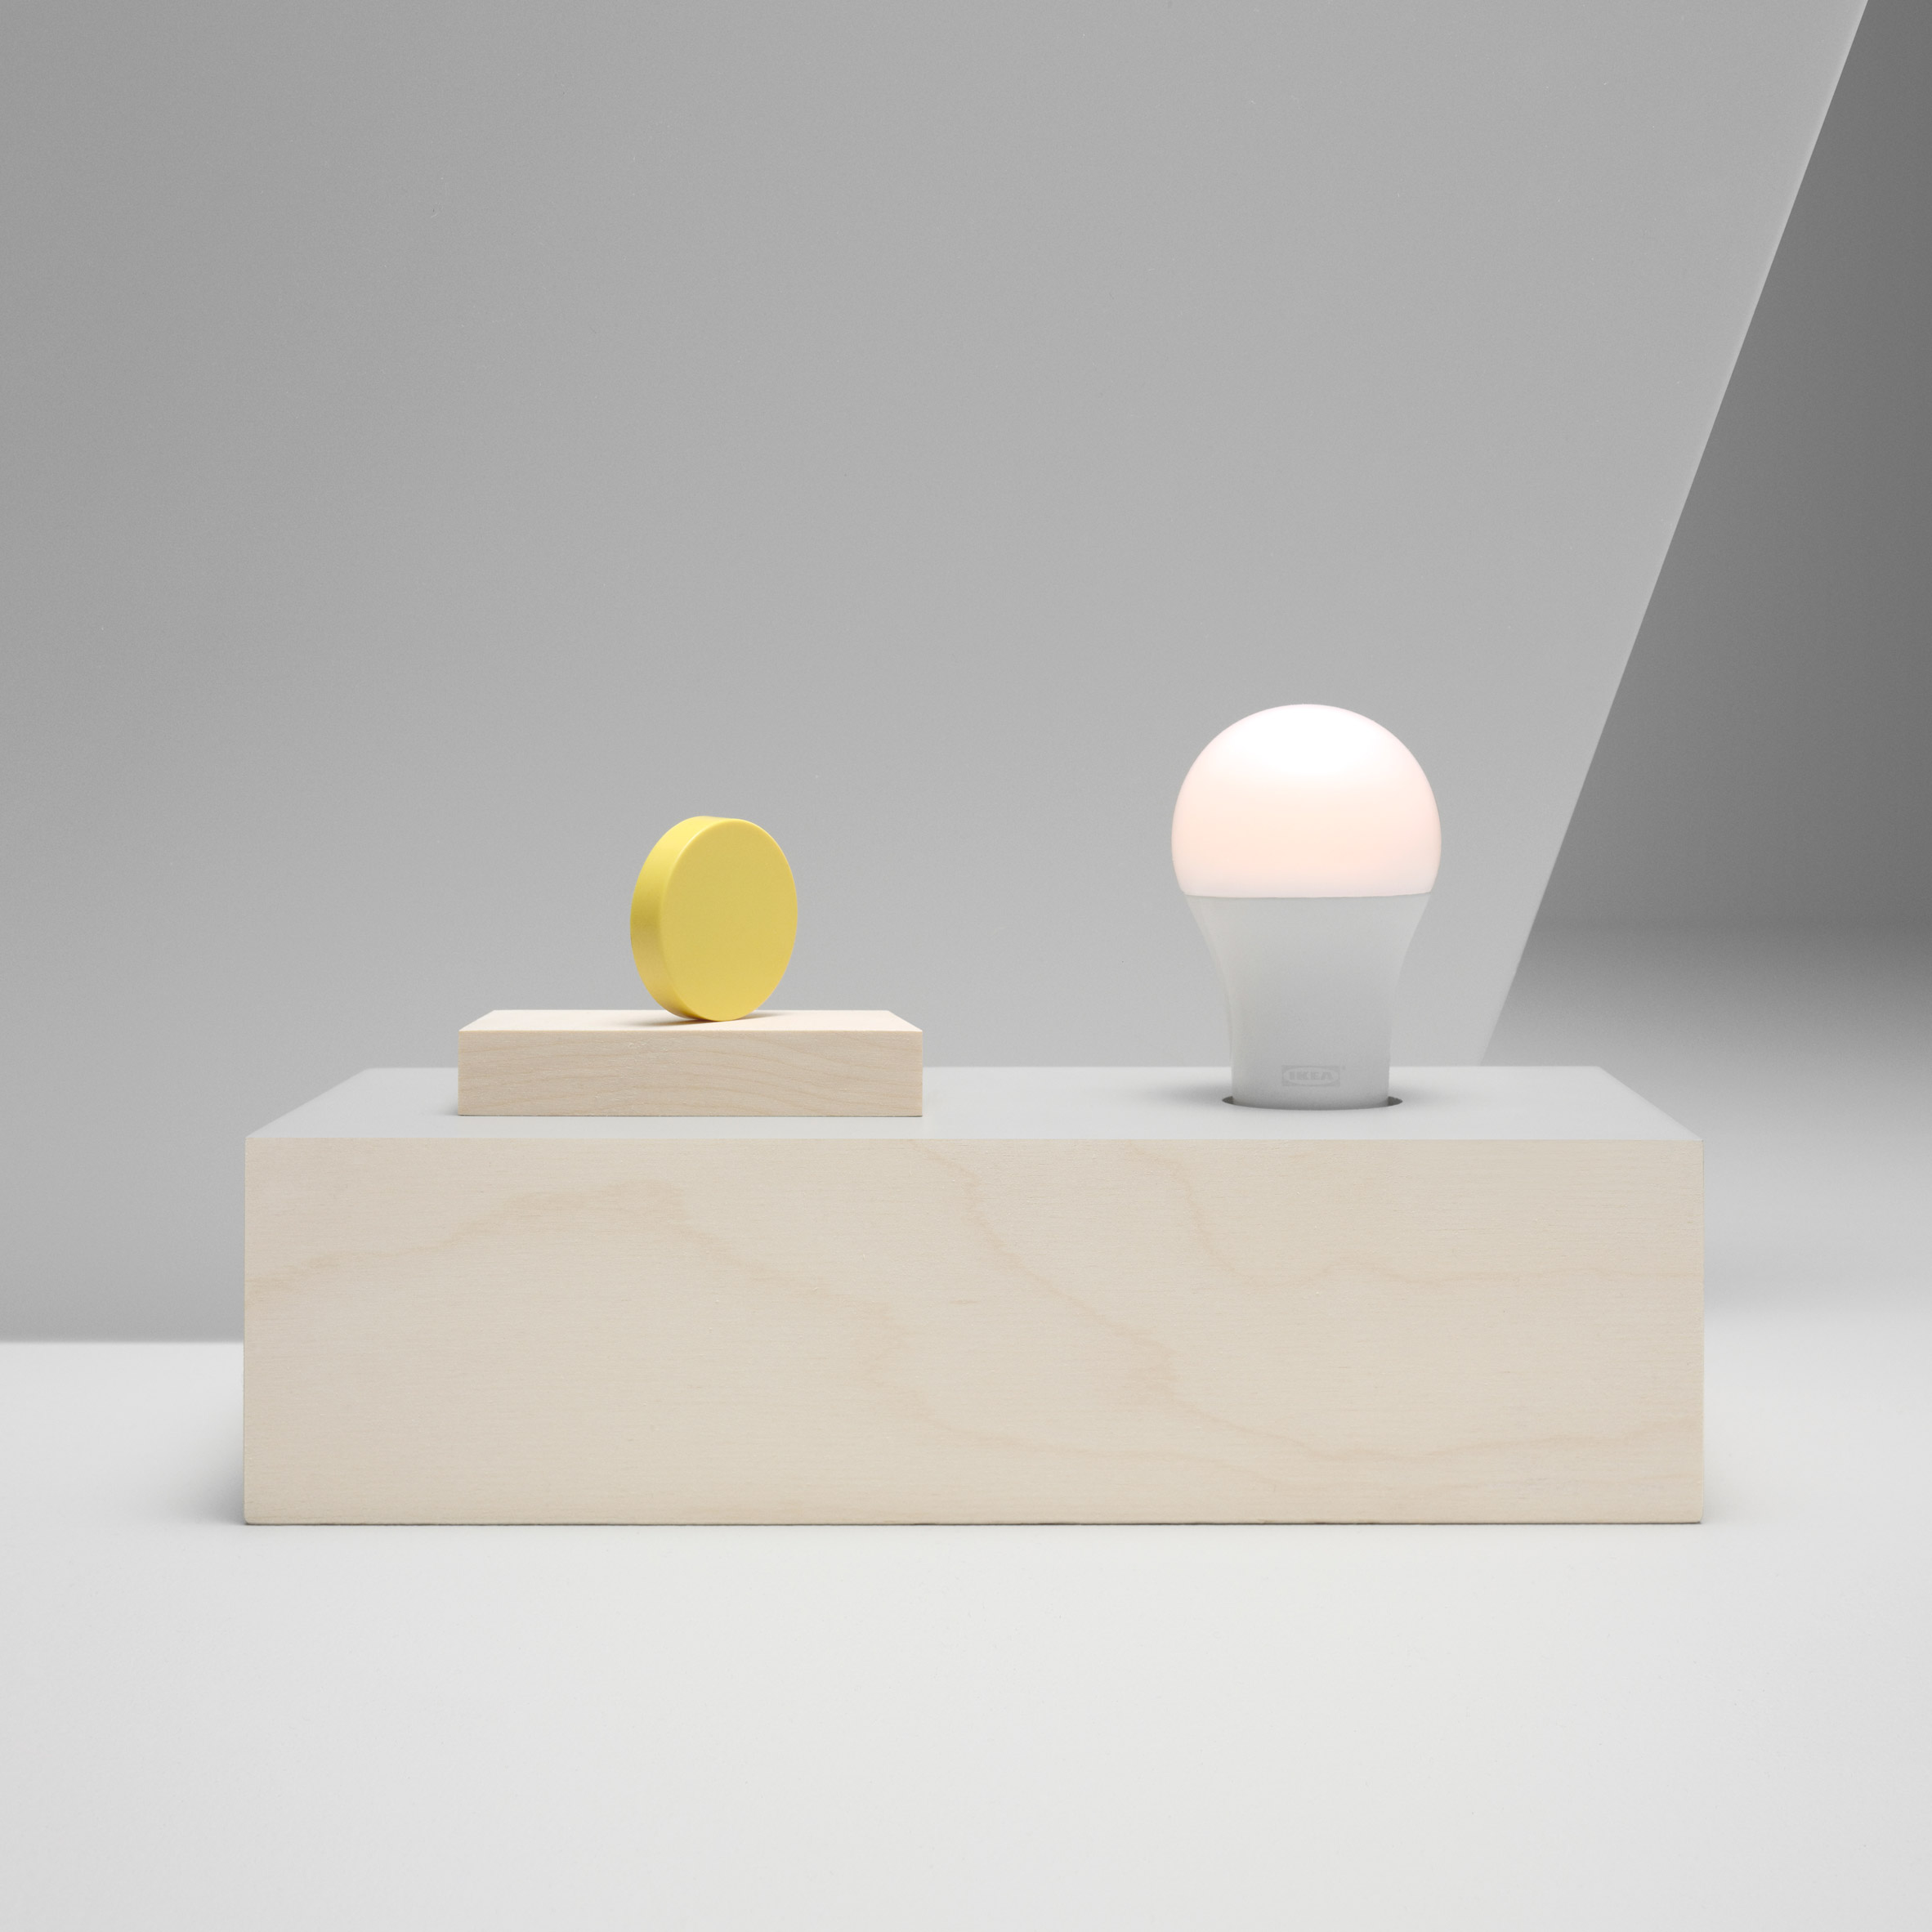 ikea-smart-lights-design-lighting-lamps_dezeen_2364_col_4